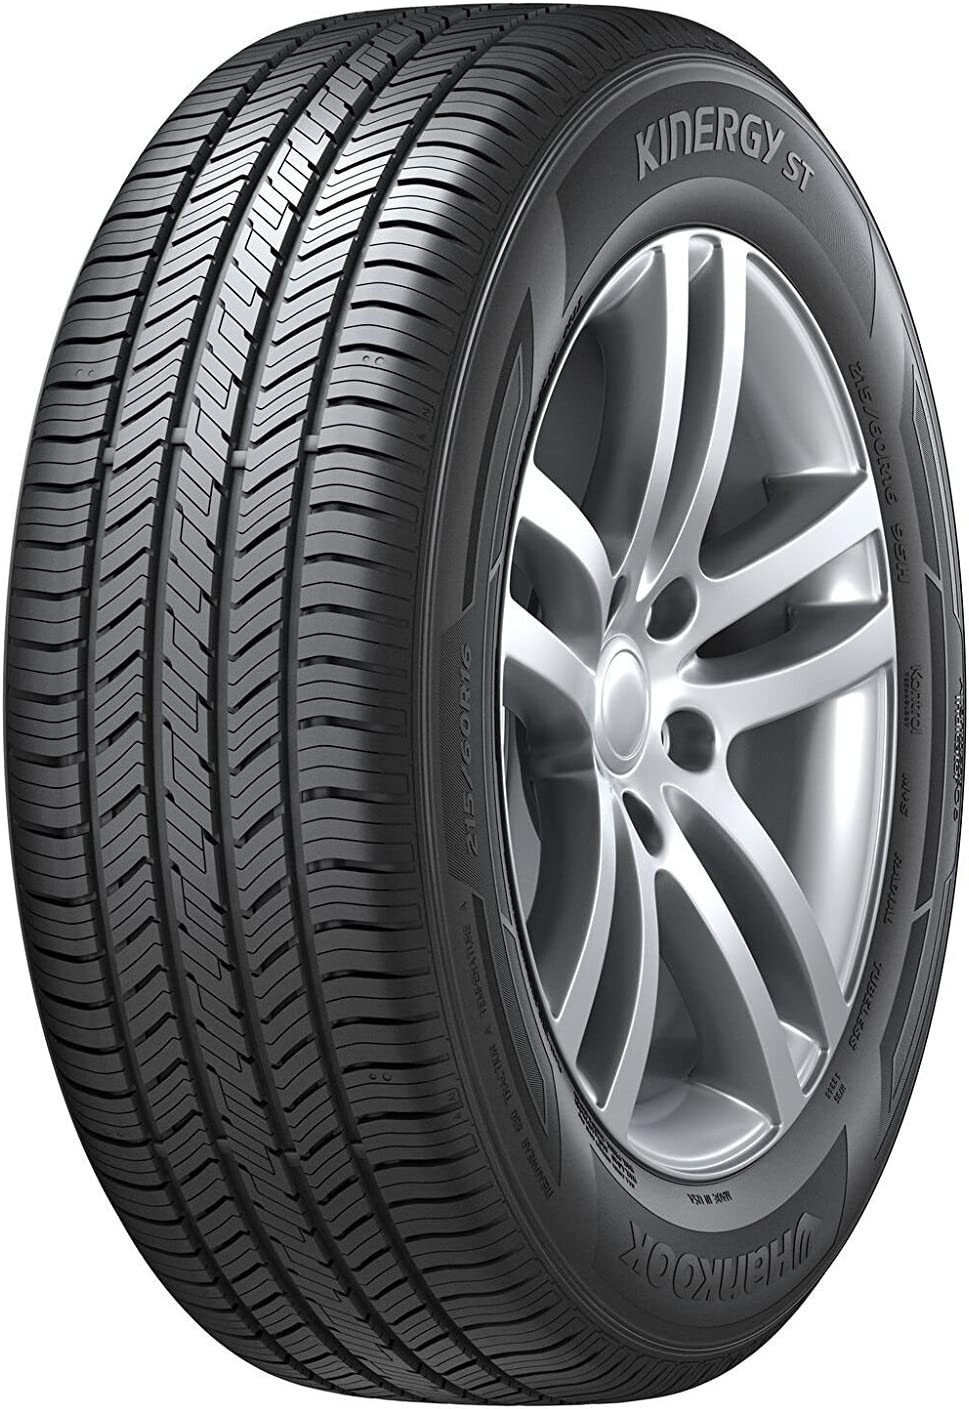 Hankook H735 KINERGY ST Touring Radial Tire-215//65R17 99T